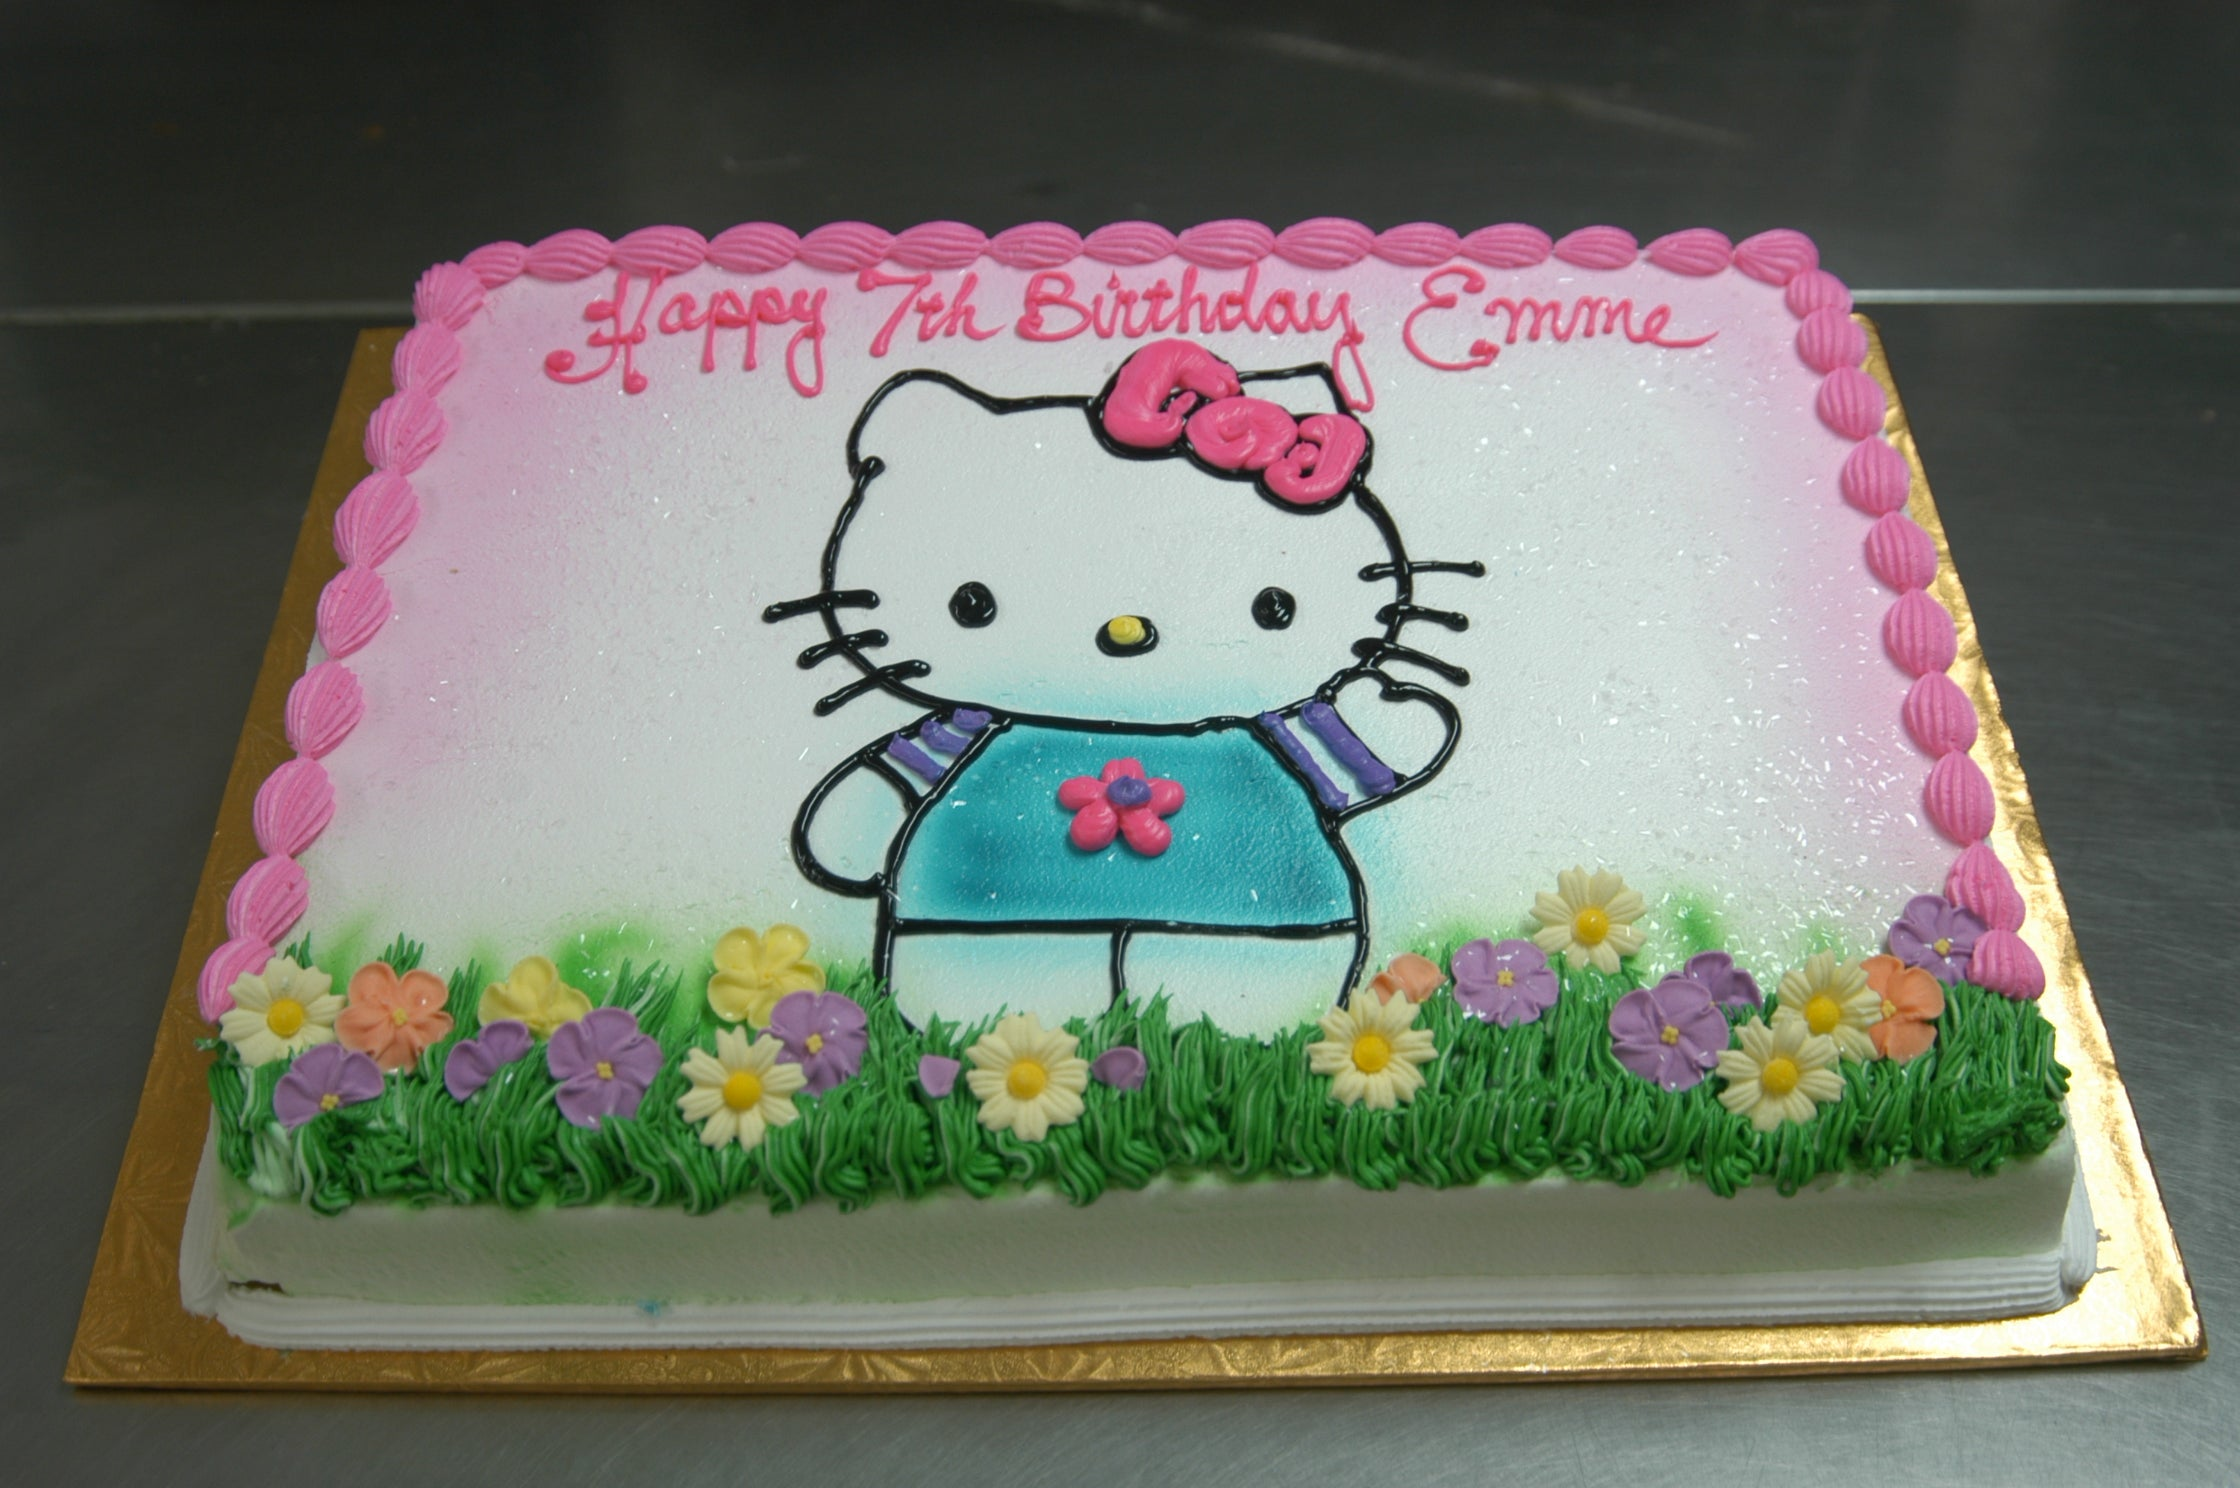 MaArthur's Bakery Custom Cake with Hello Kitty Standing on Flowers